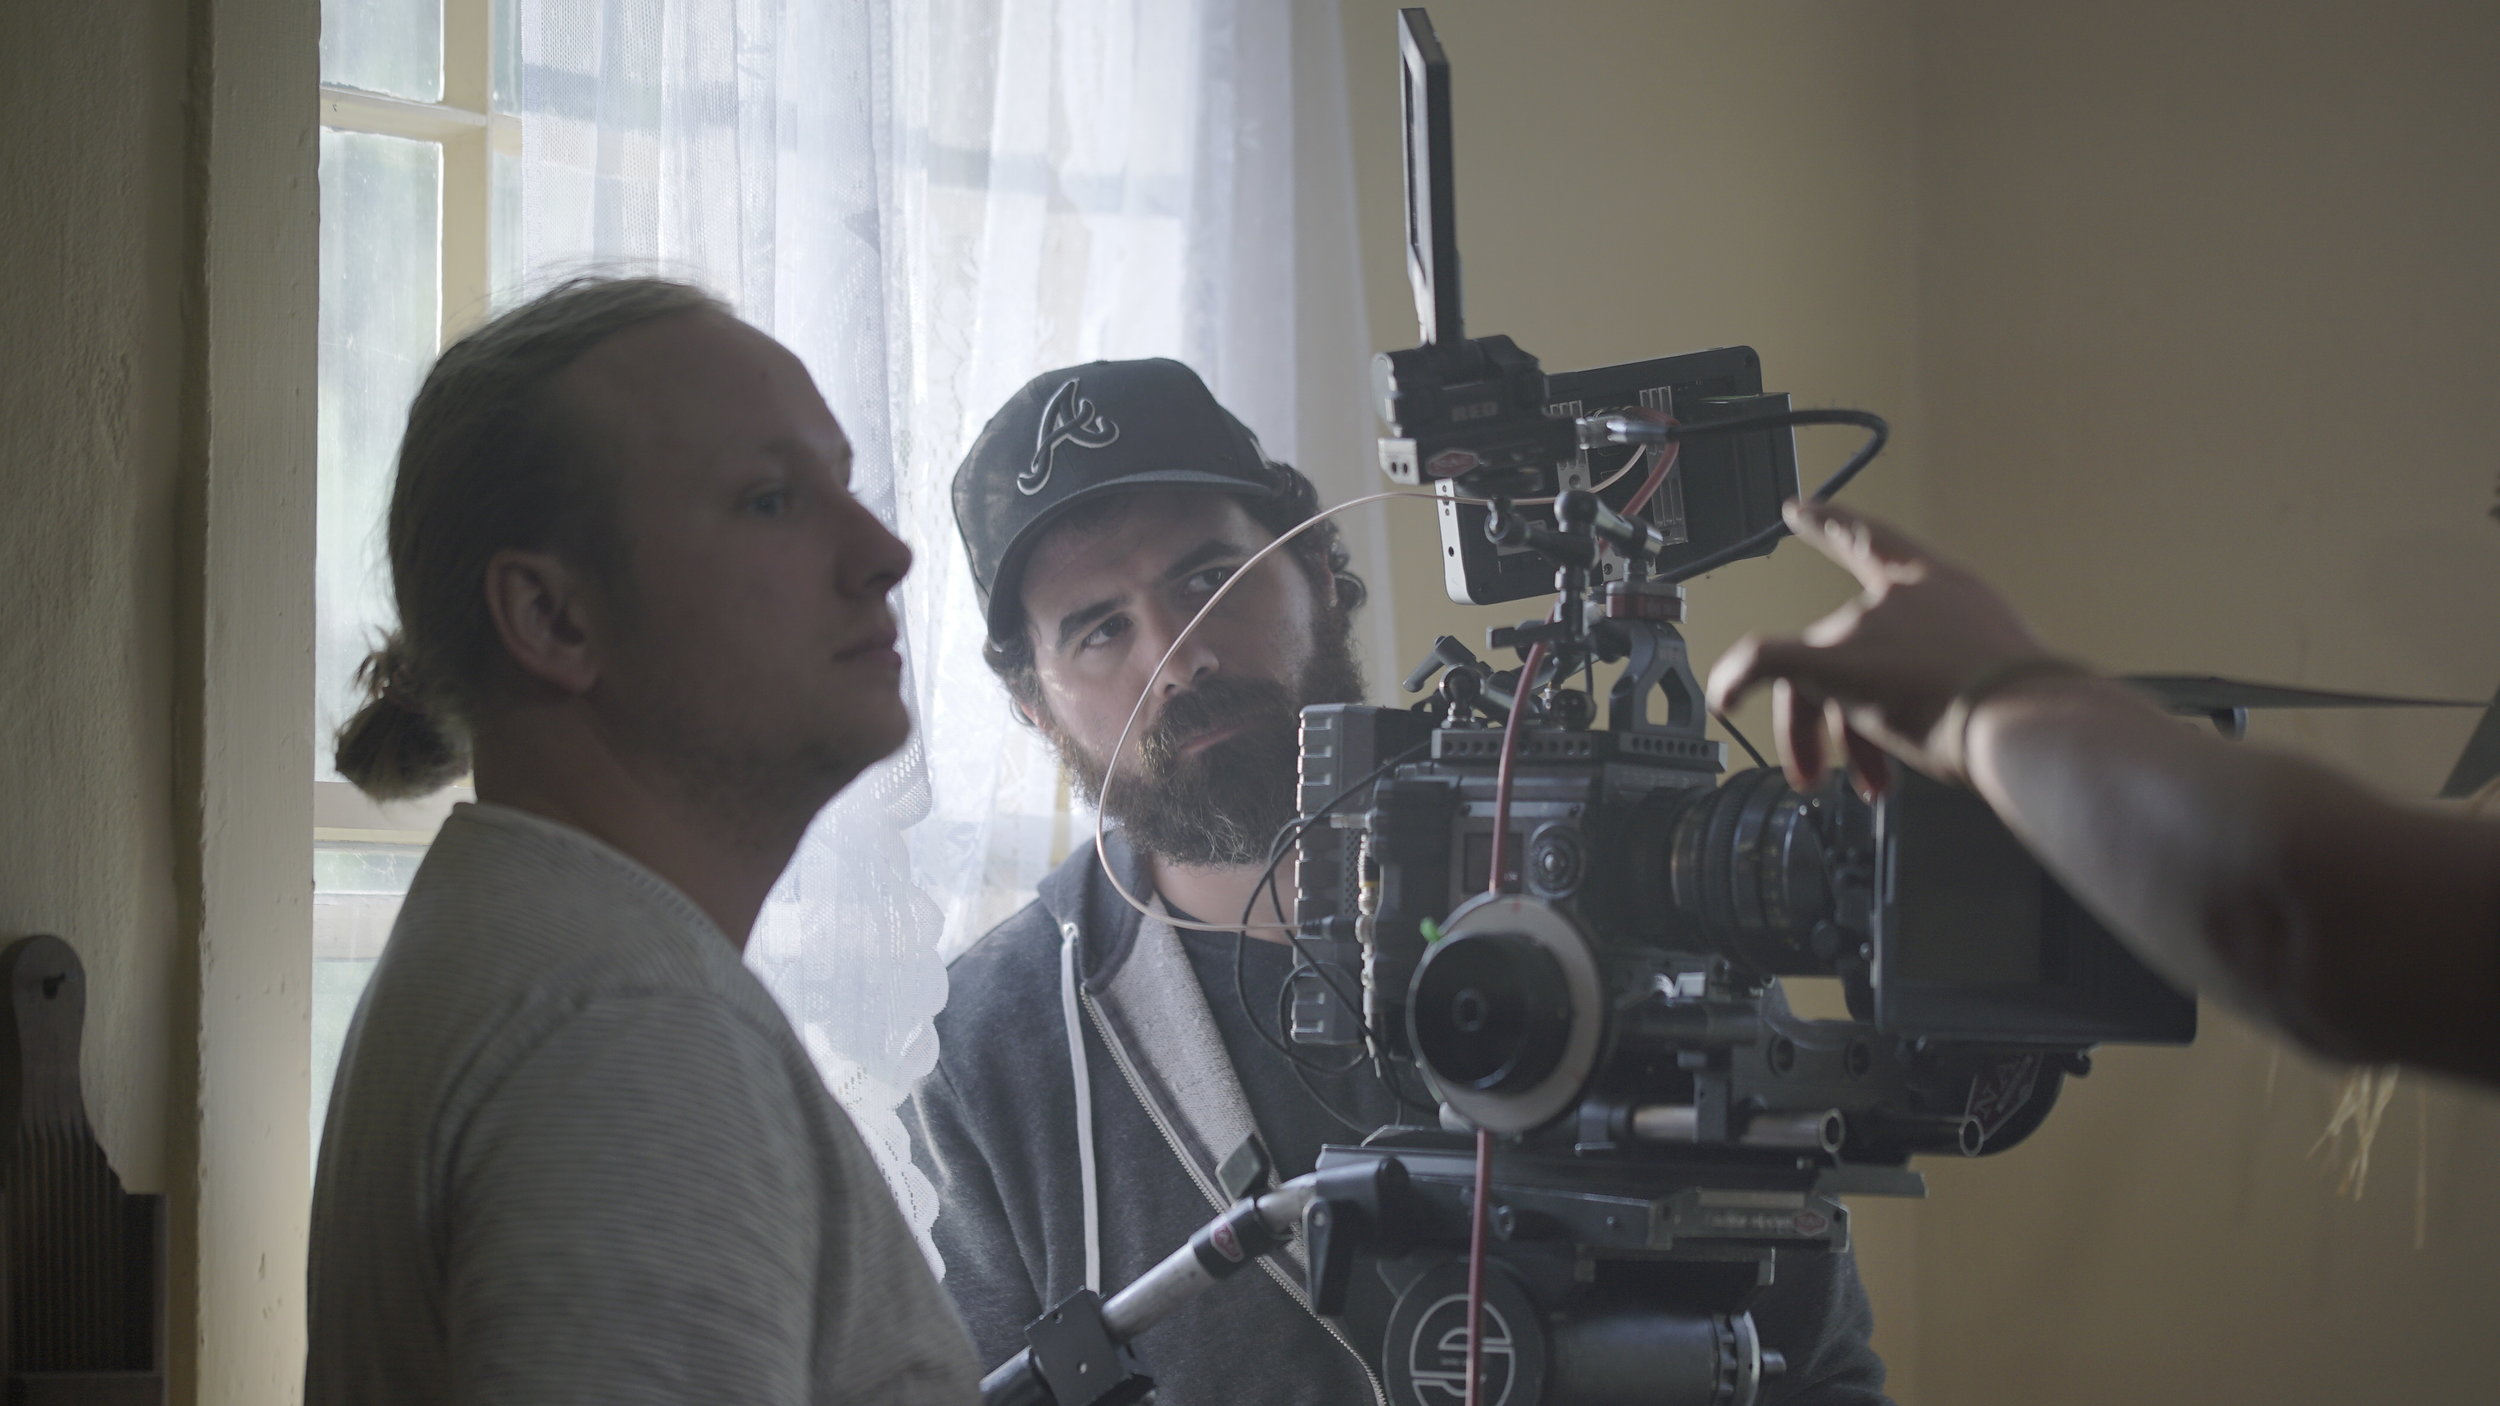 Behind the Scenes - The Cast and Crew of Mount Liptak are not only talented, but also incredibly hard-working. Take a look through the gallery of behind the scenes photos to see how we pulled off some of the shots in Mount Liptak.